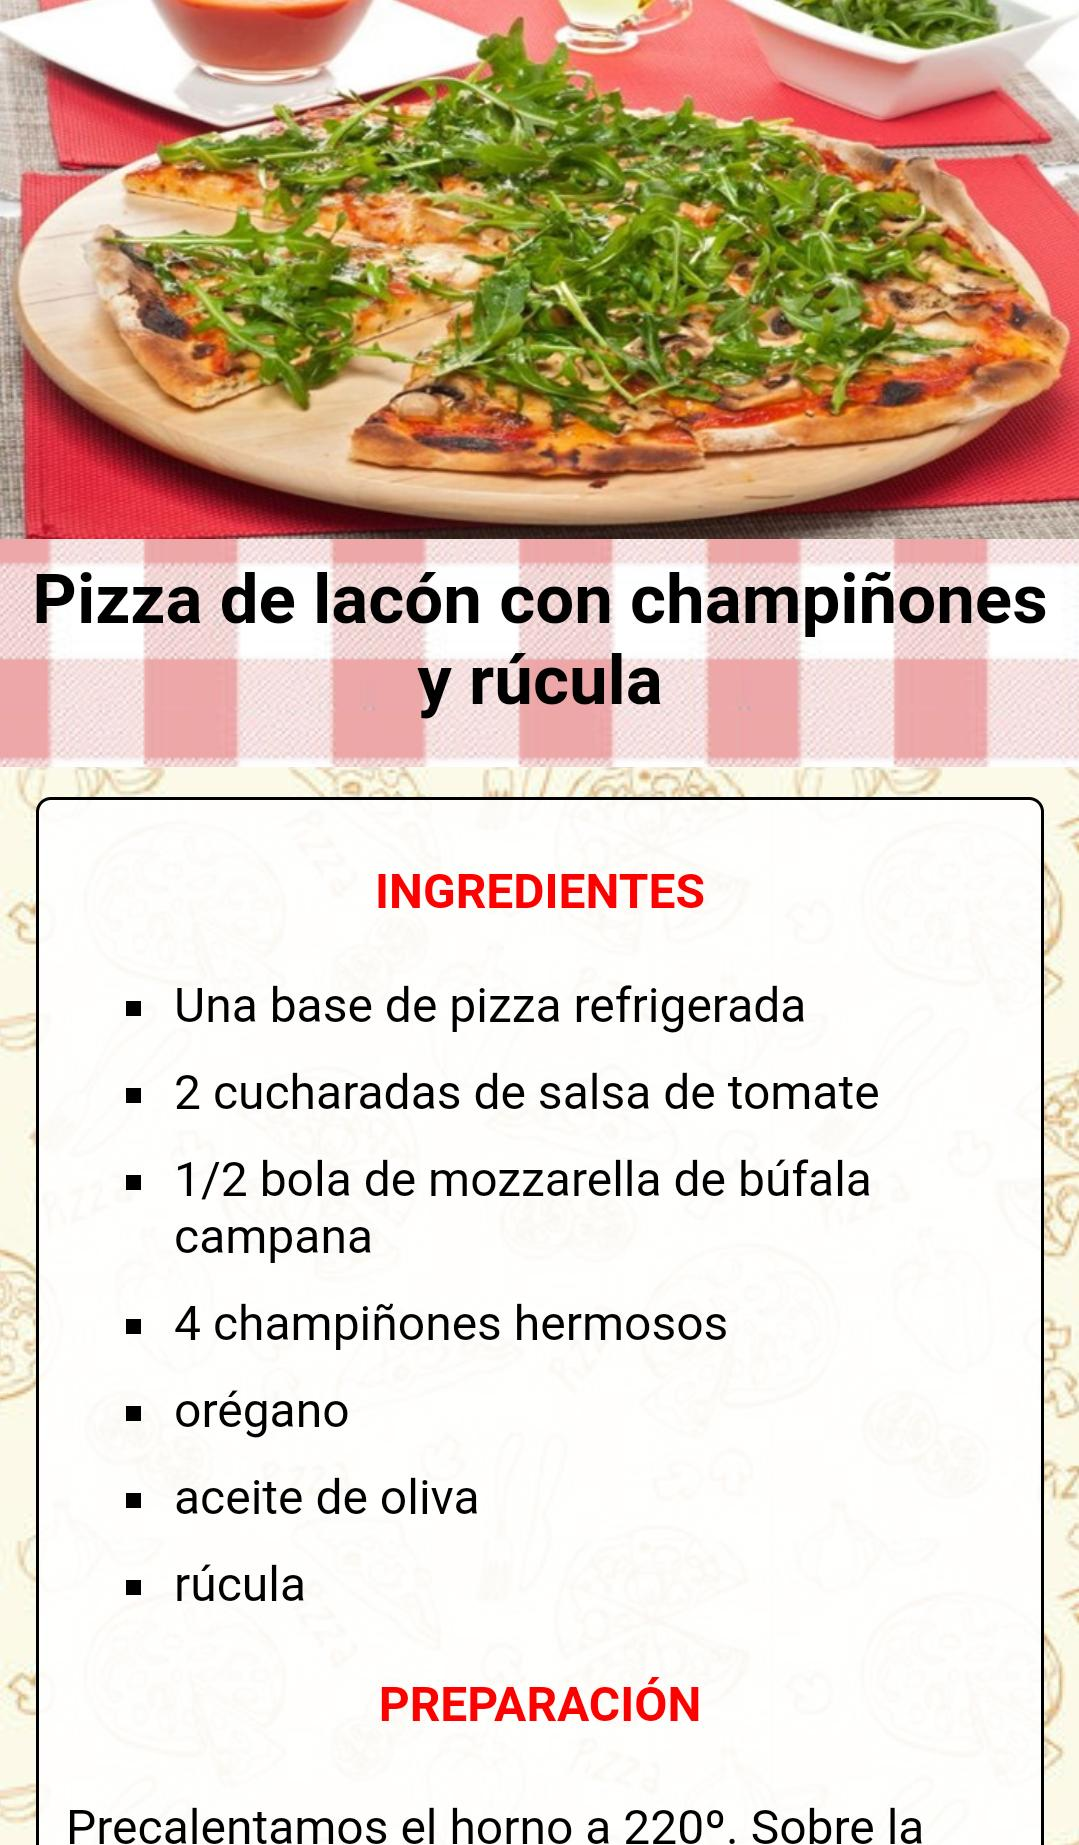 Recetas De Pizzas Caseras For Android Apk Download